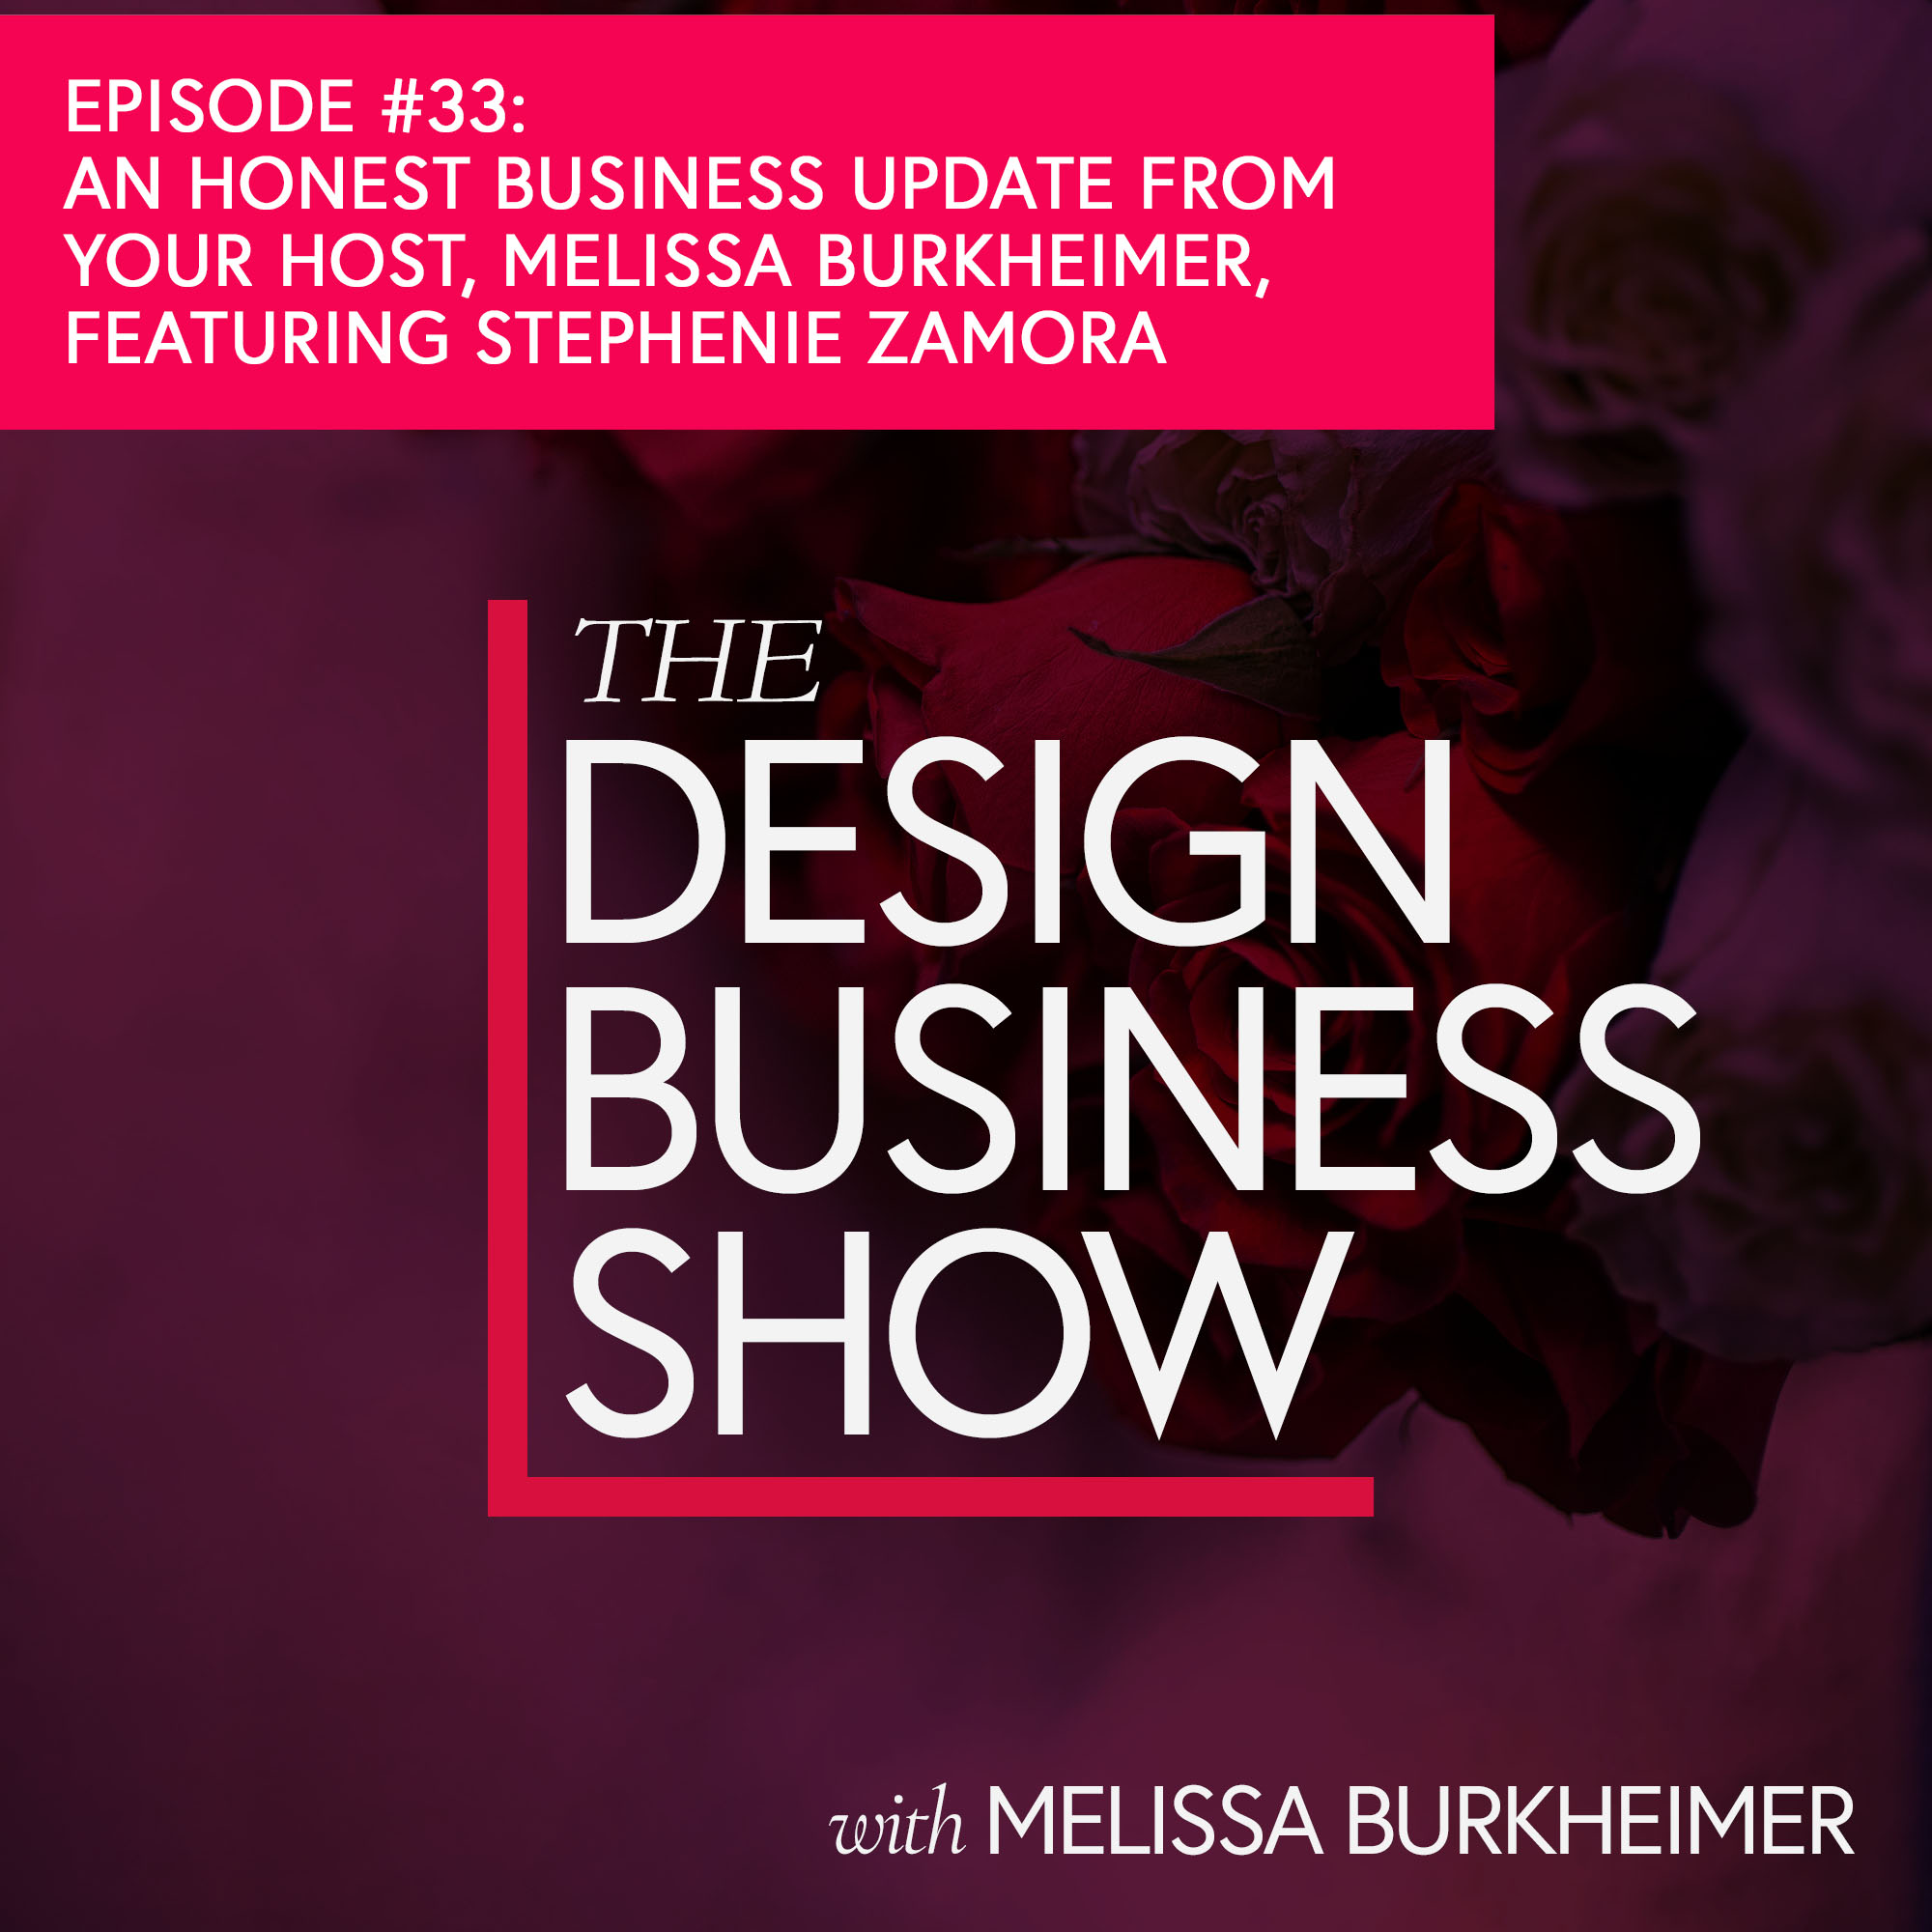 In today's episode of The Design Business Show, we're flipping the script and I'm being interviewed by my new friend Stephenie Zamora, who we first met on episode 10 of the podcast.